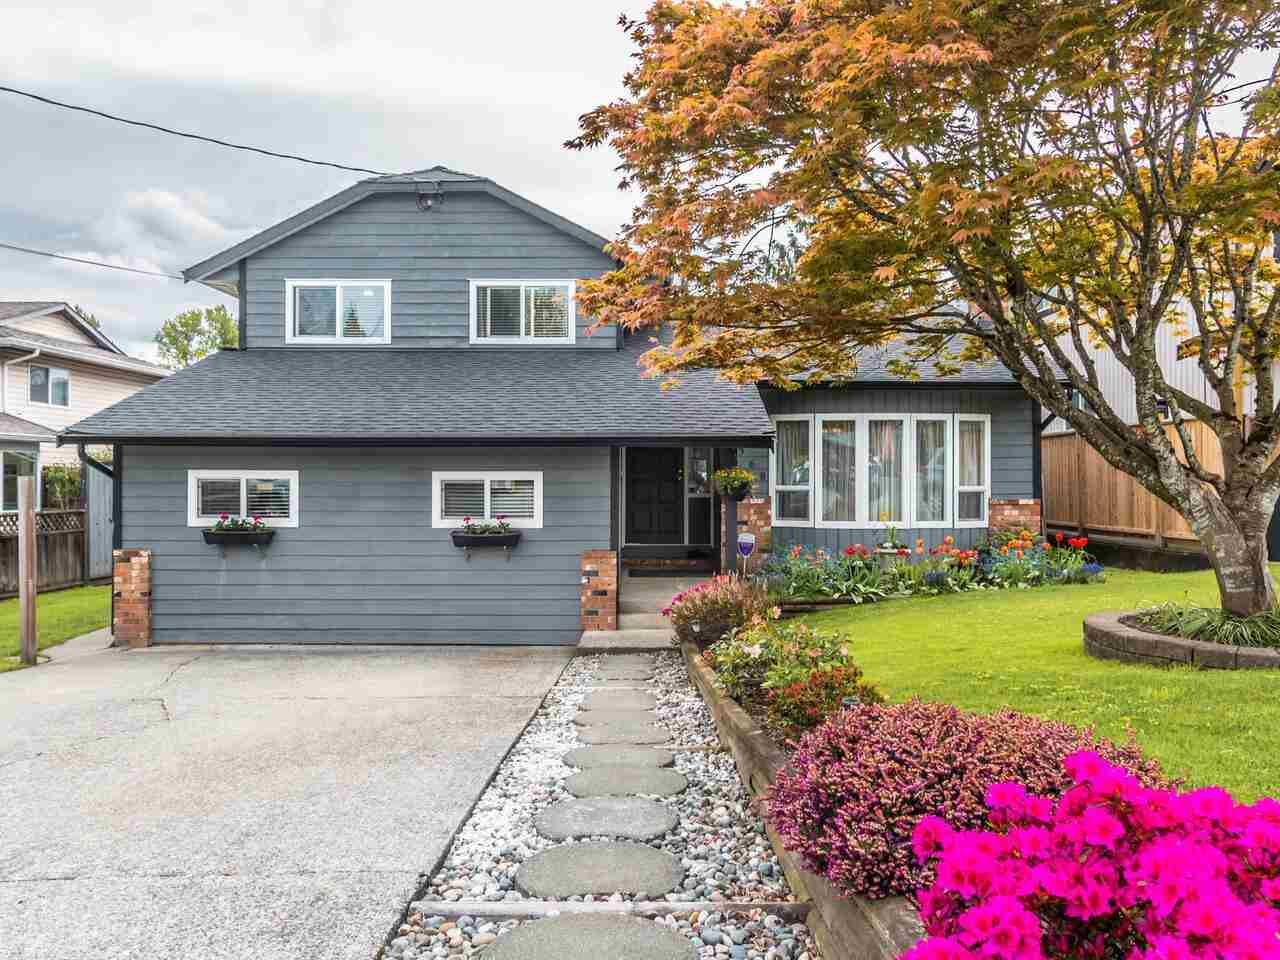 Main Photo: 3368 271A Street in Langley: Aldergrove Langley House for sale : MLS®# R2576888